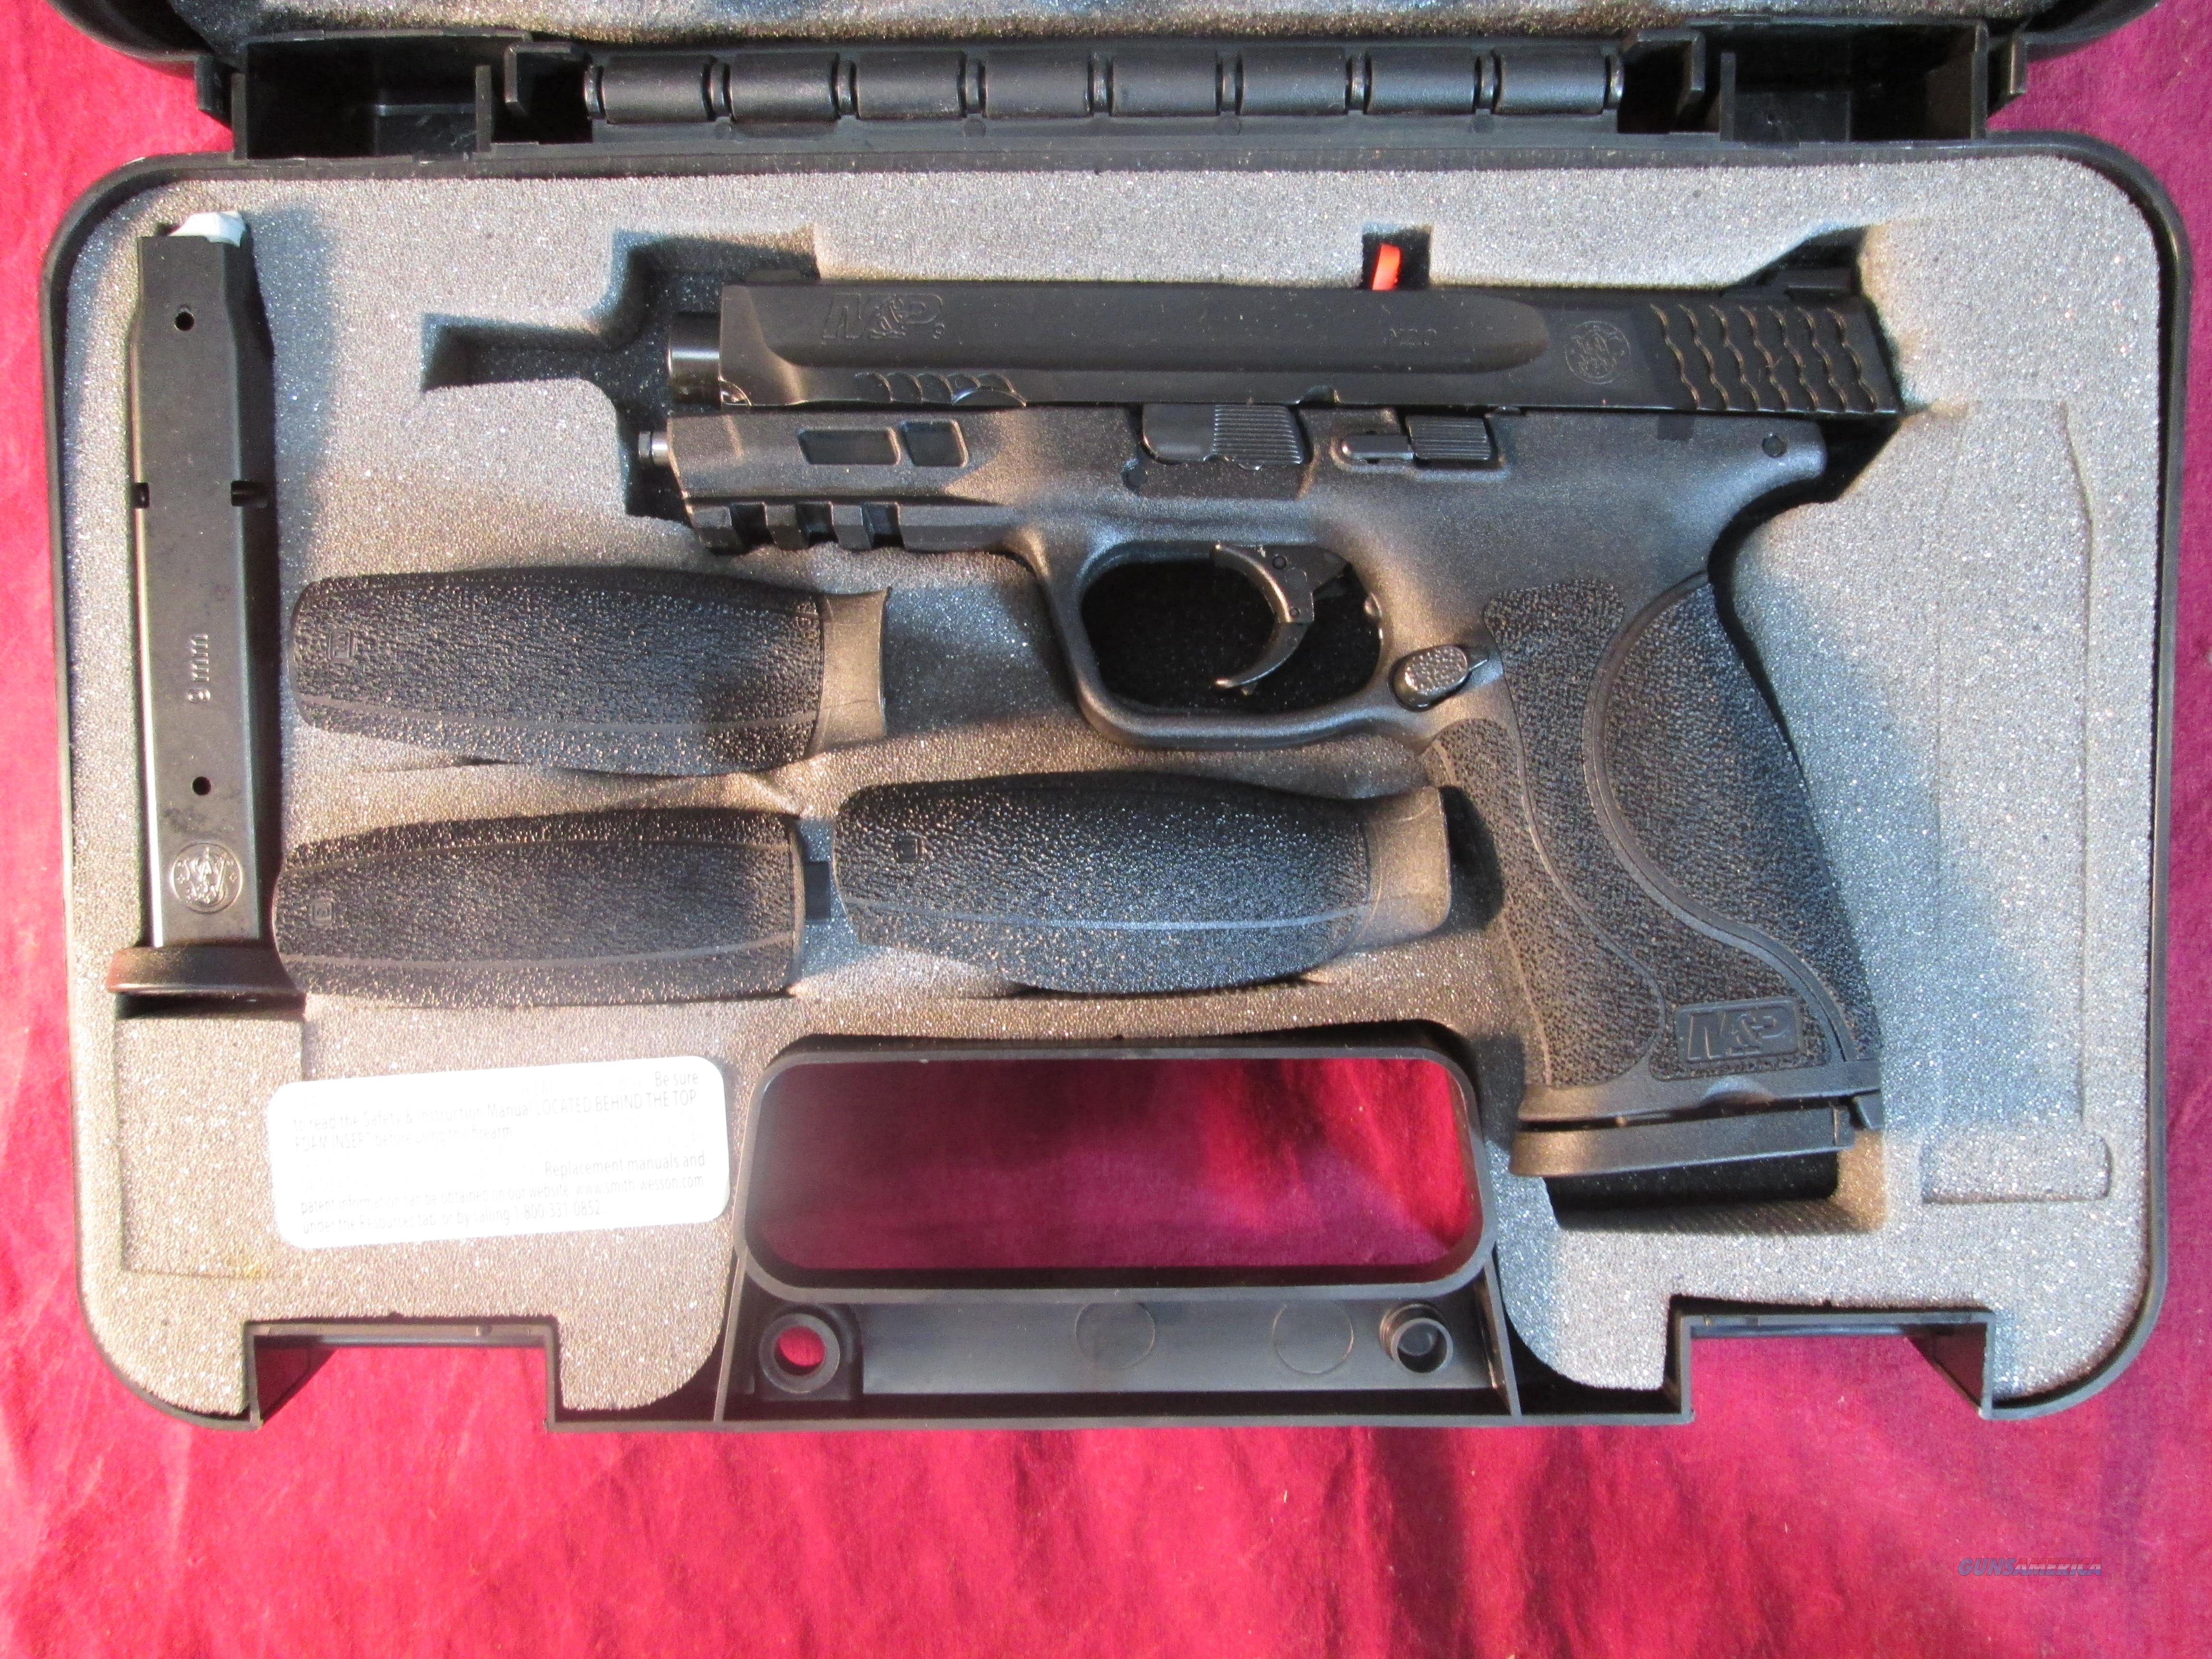 "SMITH AND WESSON M&P 2.0 9MM 4.25"" BLACK NEW (11521)    Guns > Pistols > Smith & Wesson Pistols - Autos > Polymer Frame"